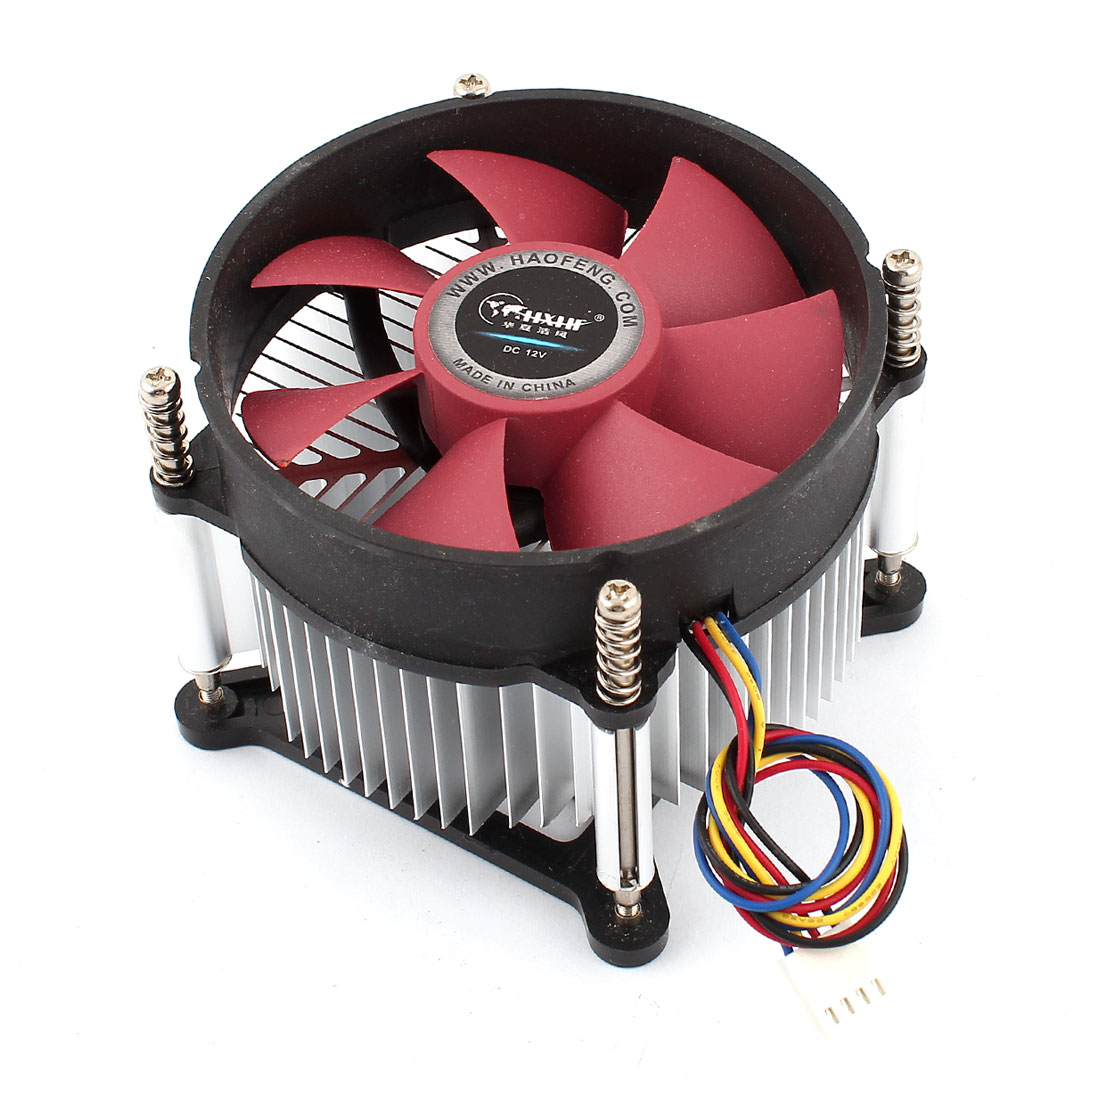 DC 12V 4Pins PC CPU Cooling Fan Heatsink for LGA 1155/1156 Intel Core i3/i5/i7